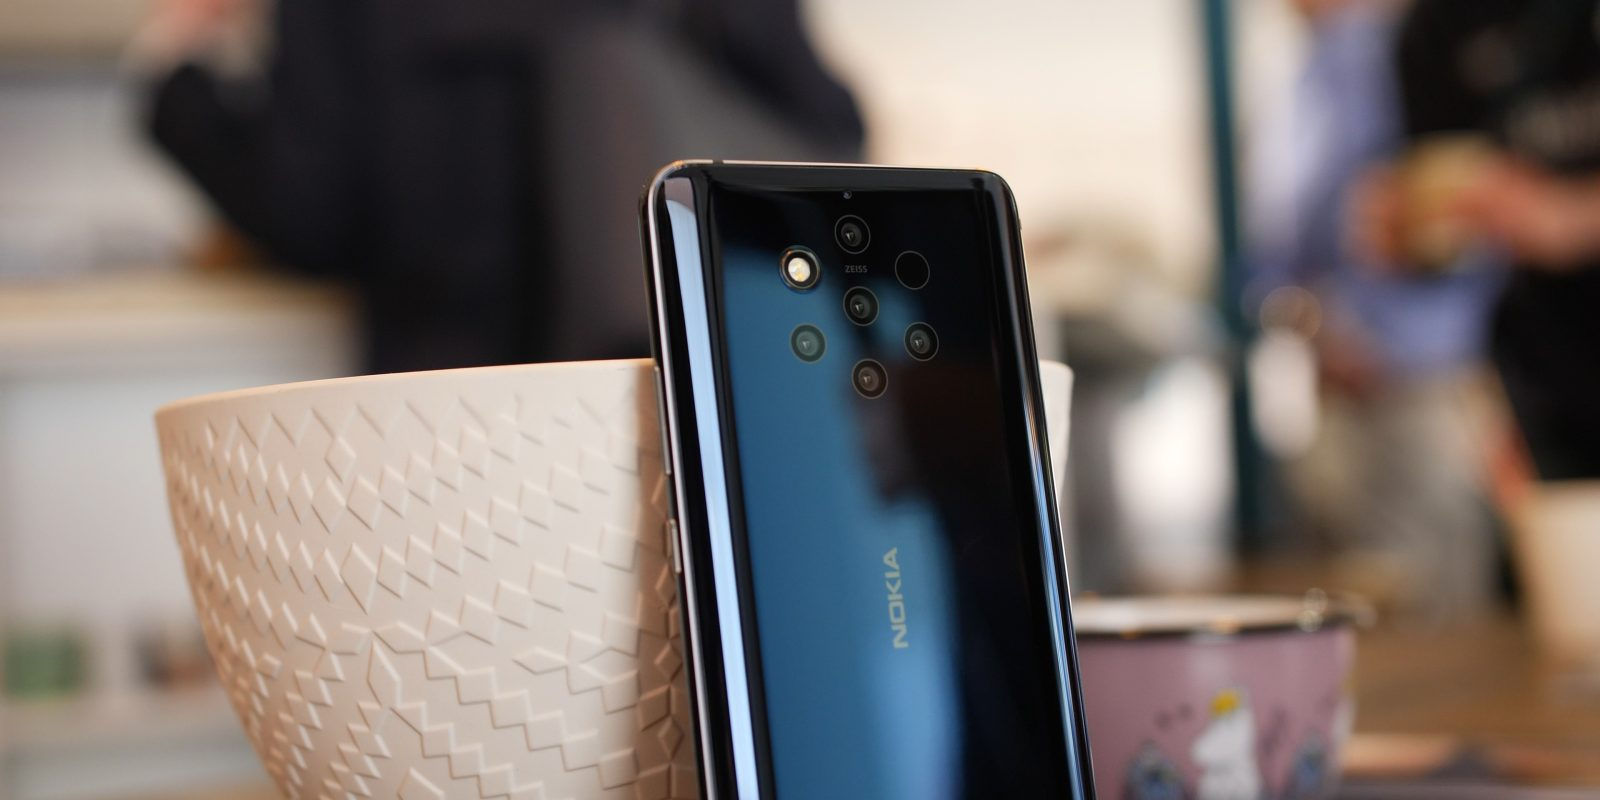 Nokia 9 PureView hands-on: Could be a camera King [Video] - 9to5Google